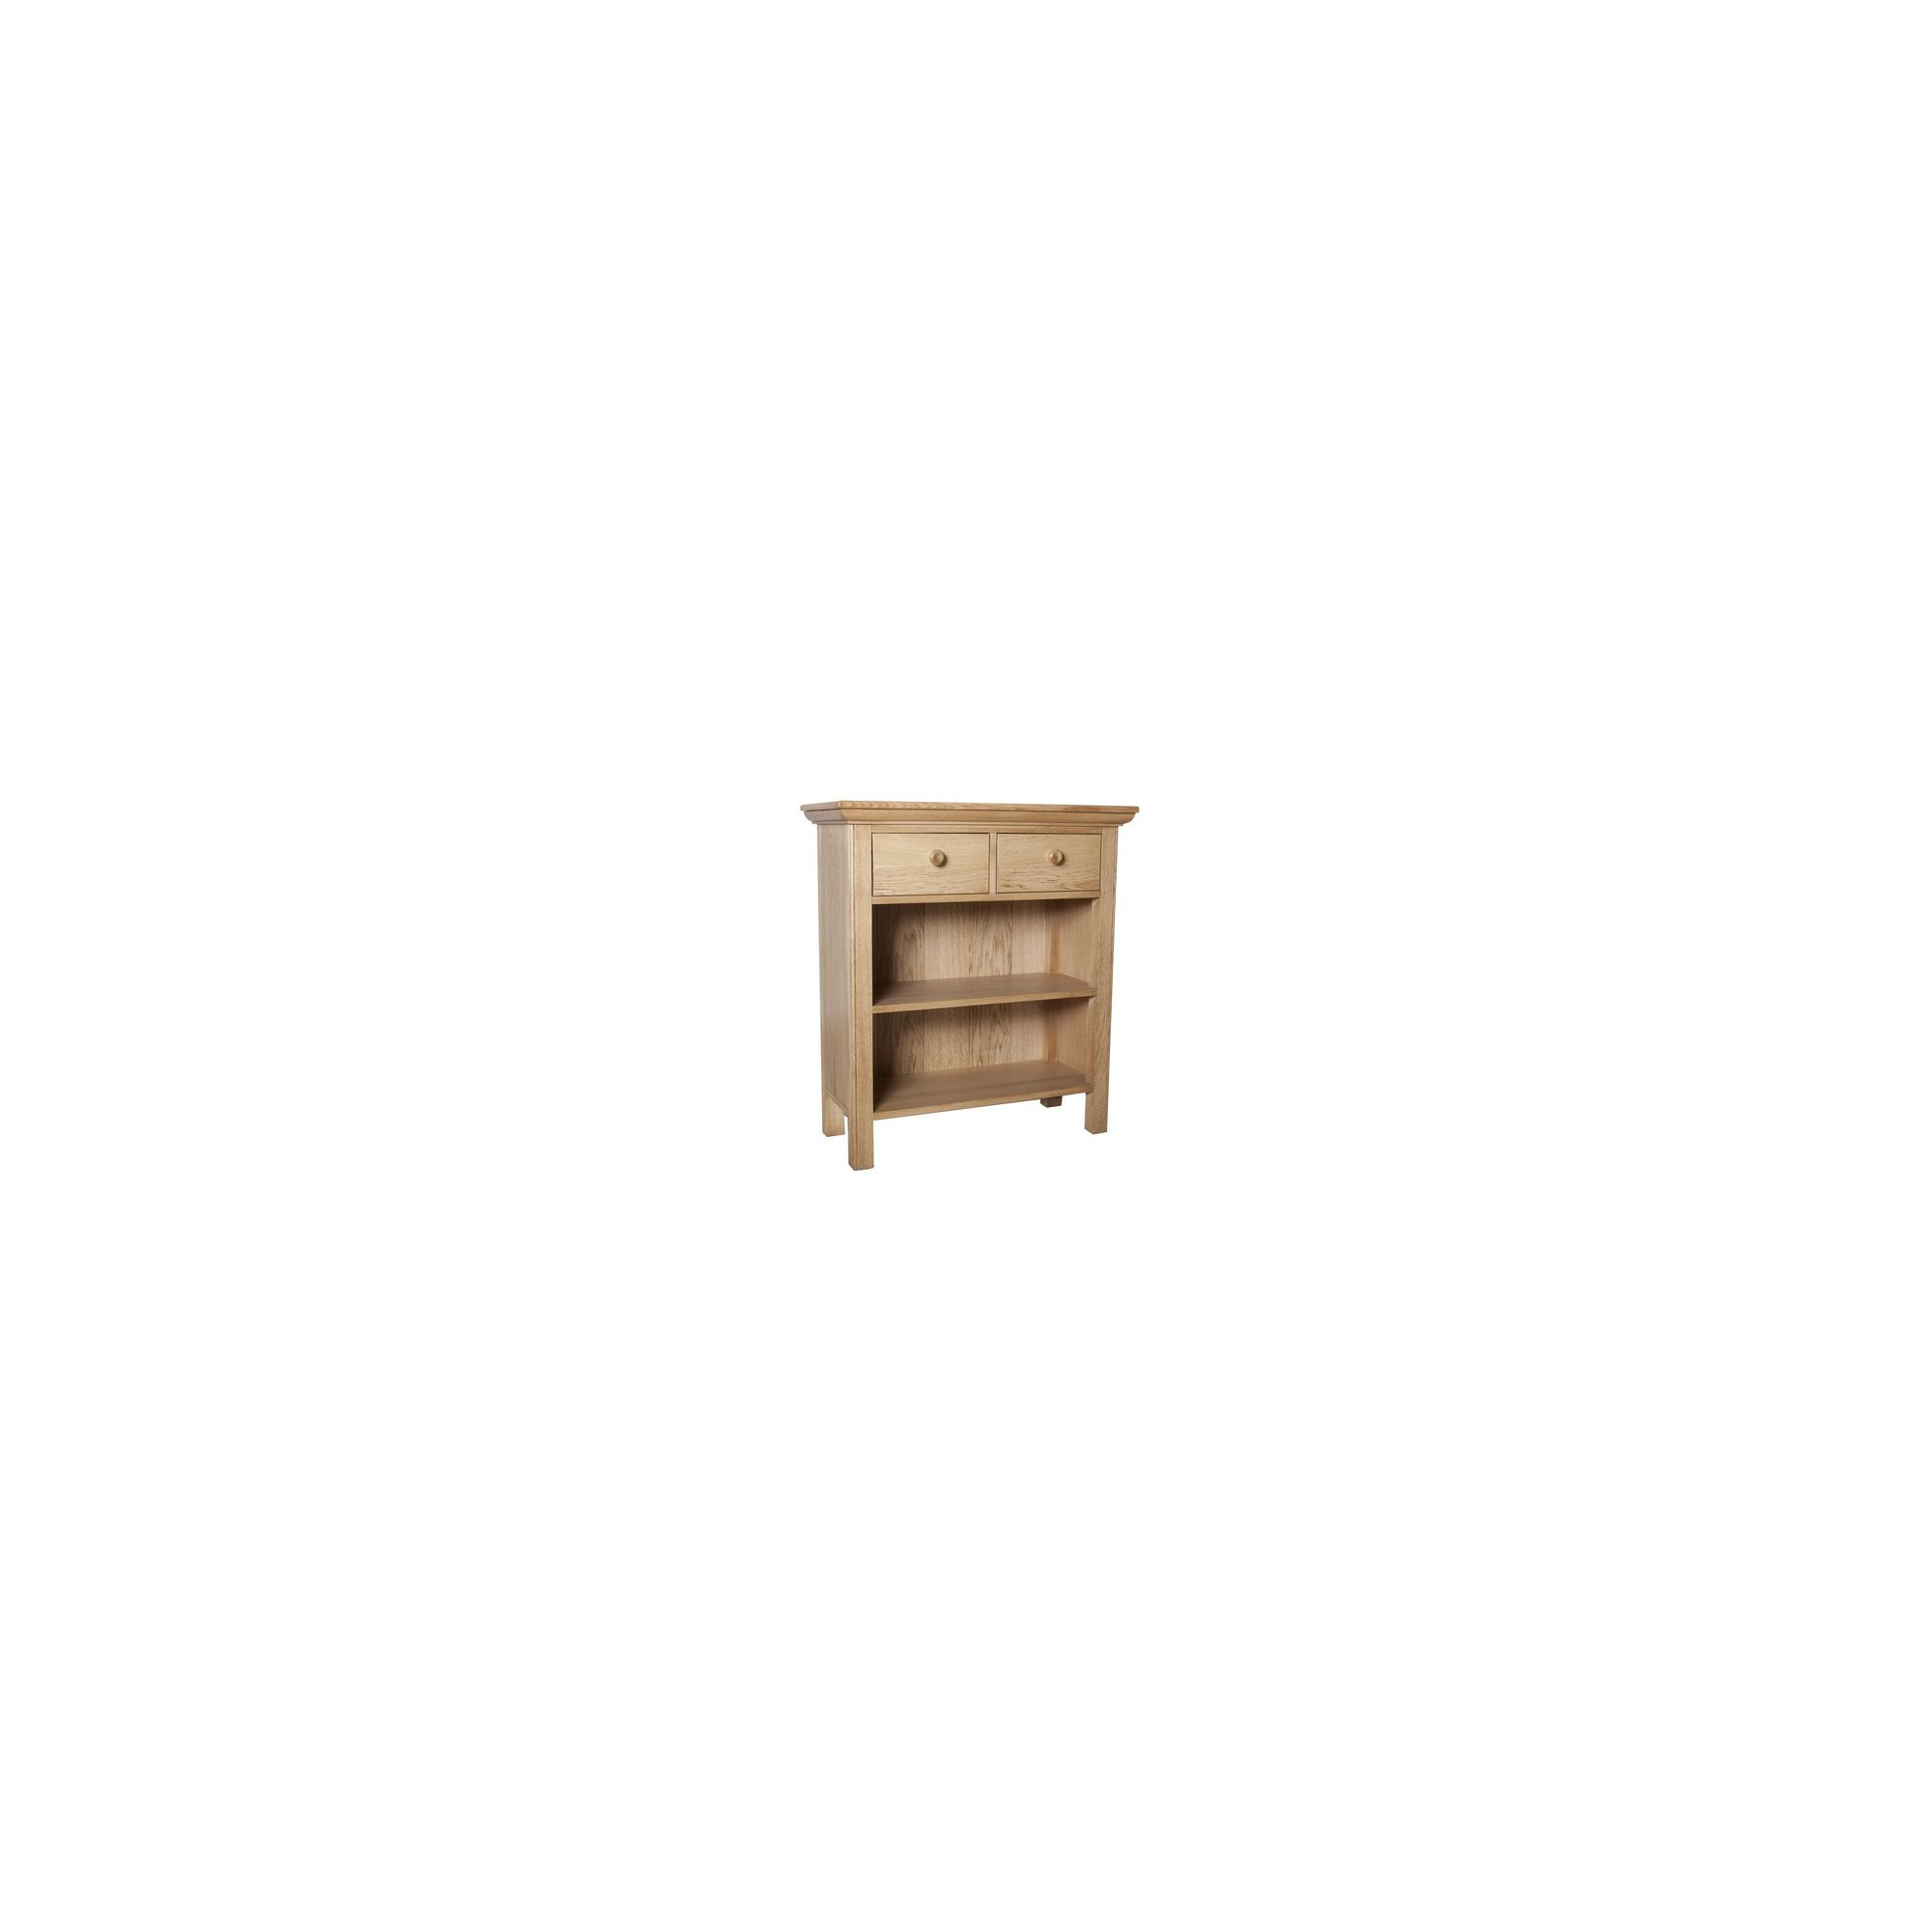 Sherry Designs Simply Dining Oak Low Bookcase at Tesco Direct